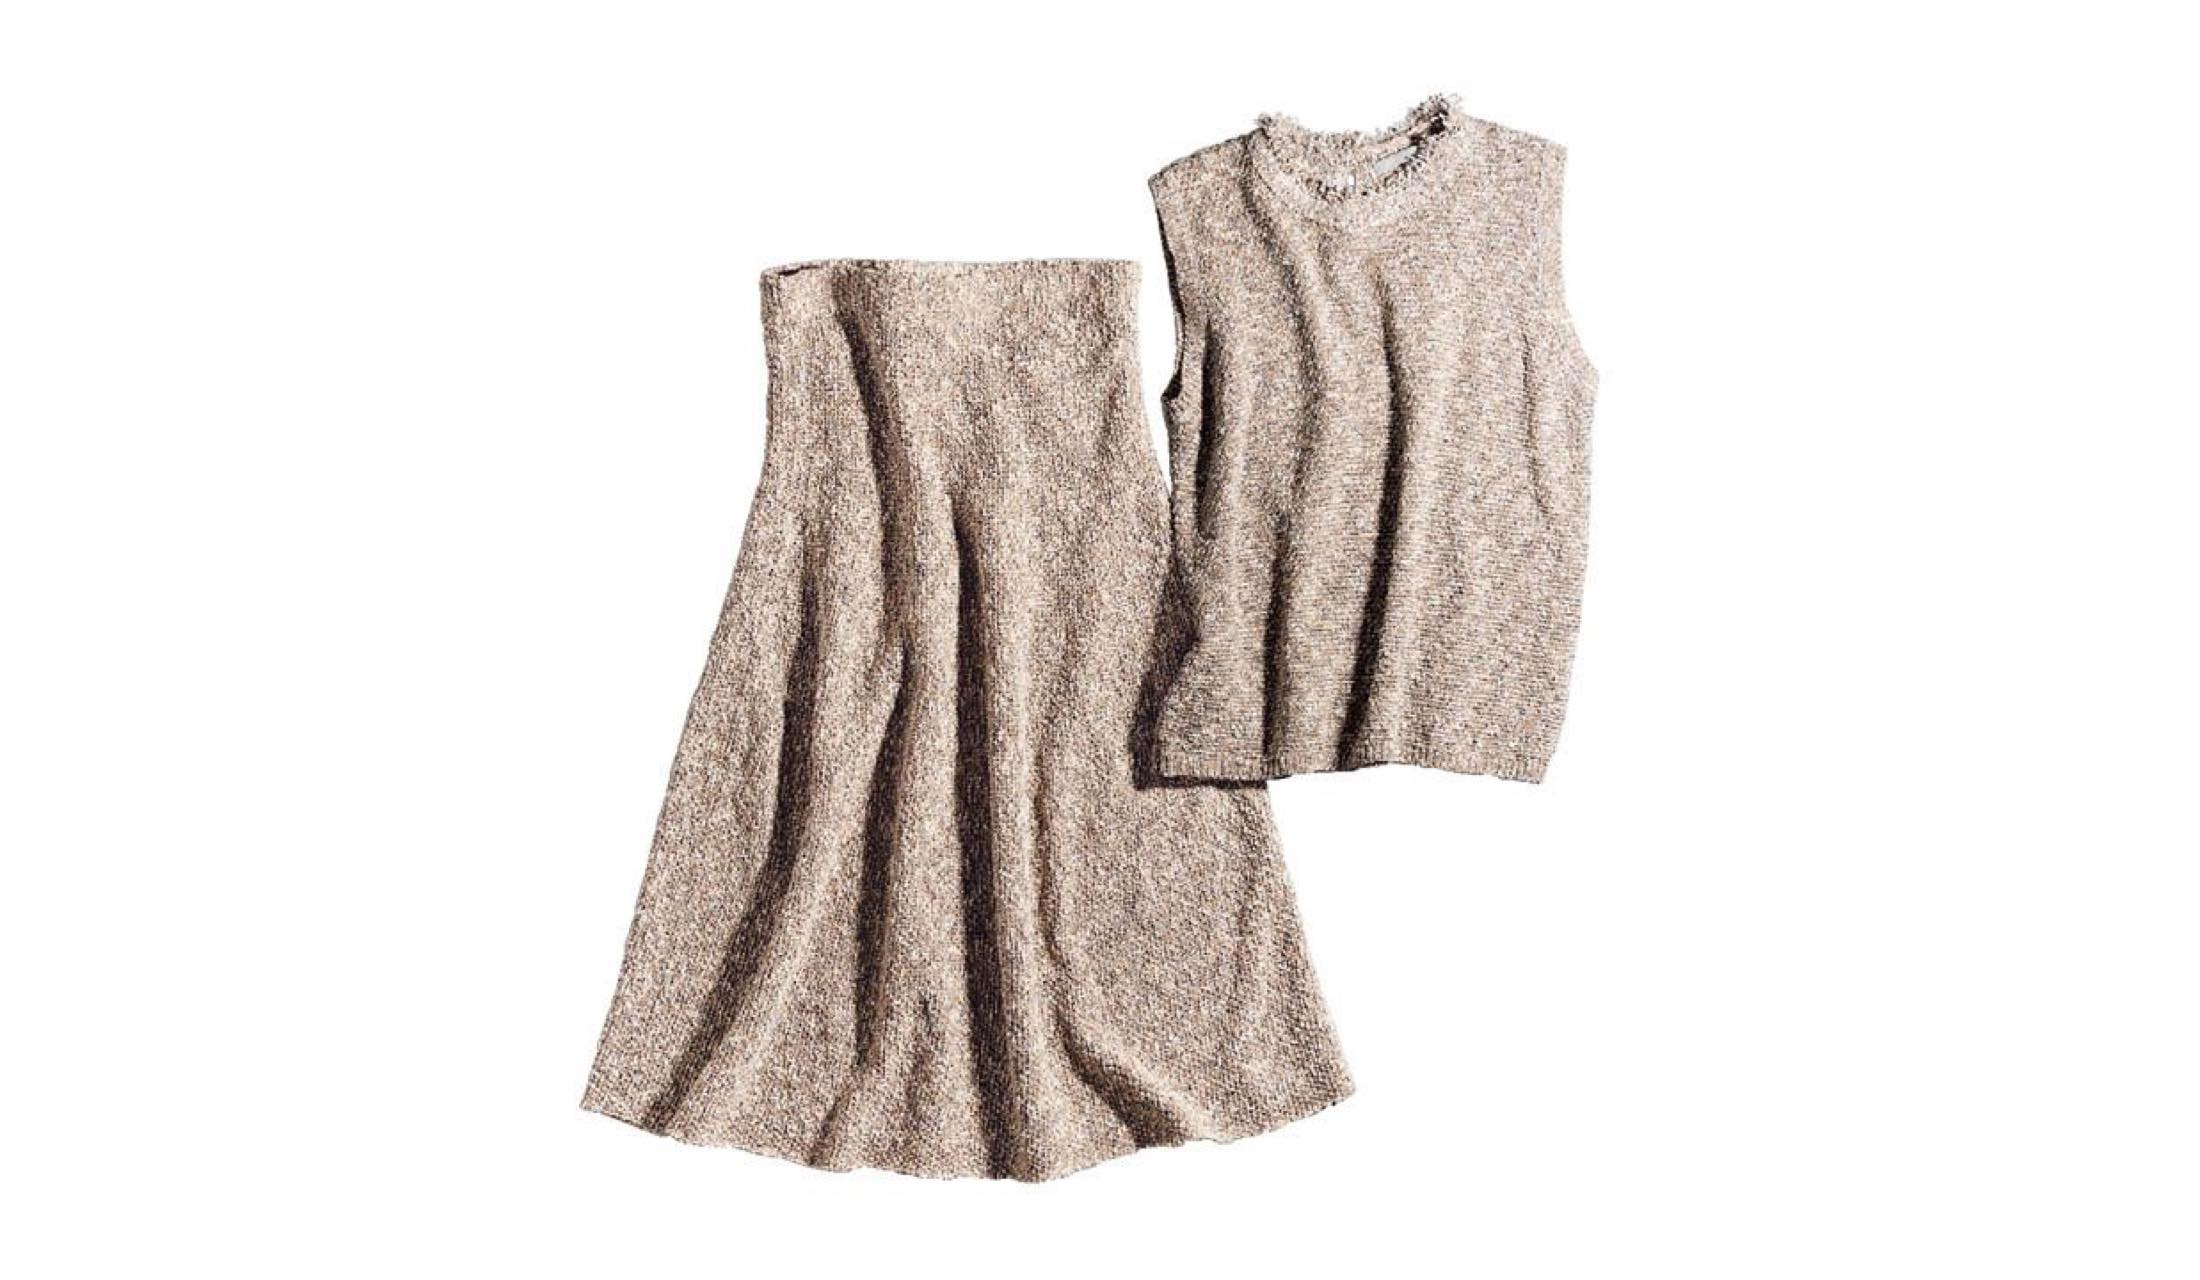 Theory luxeのトップス&スカート